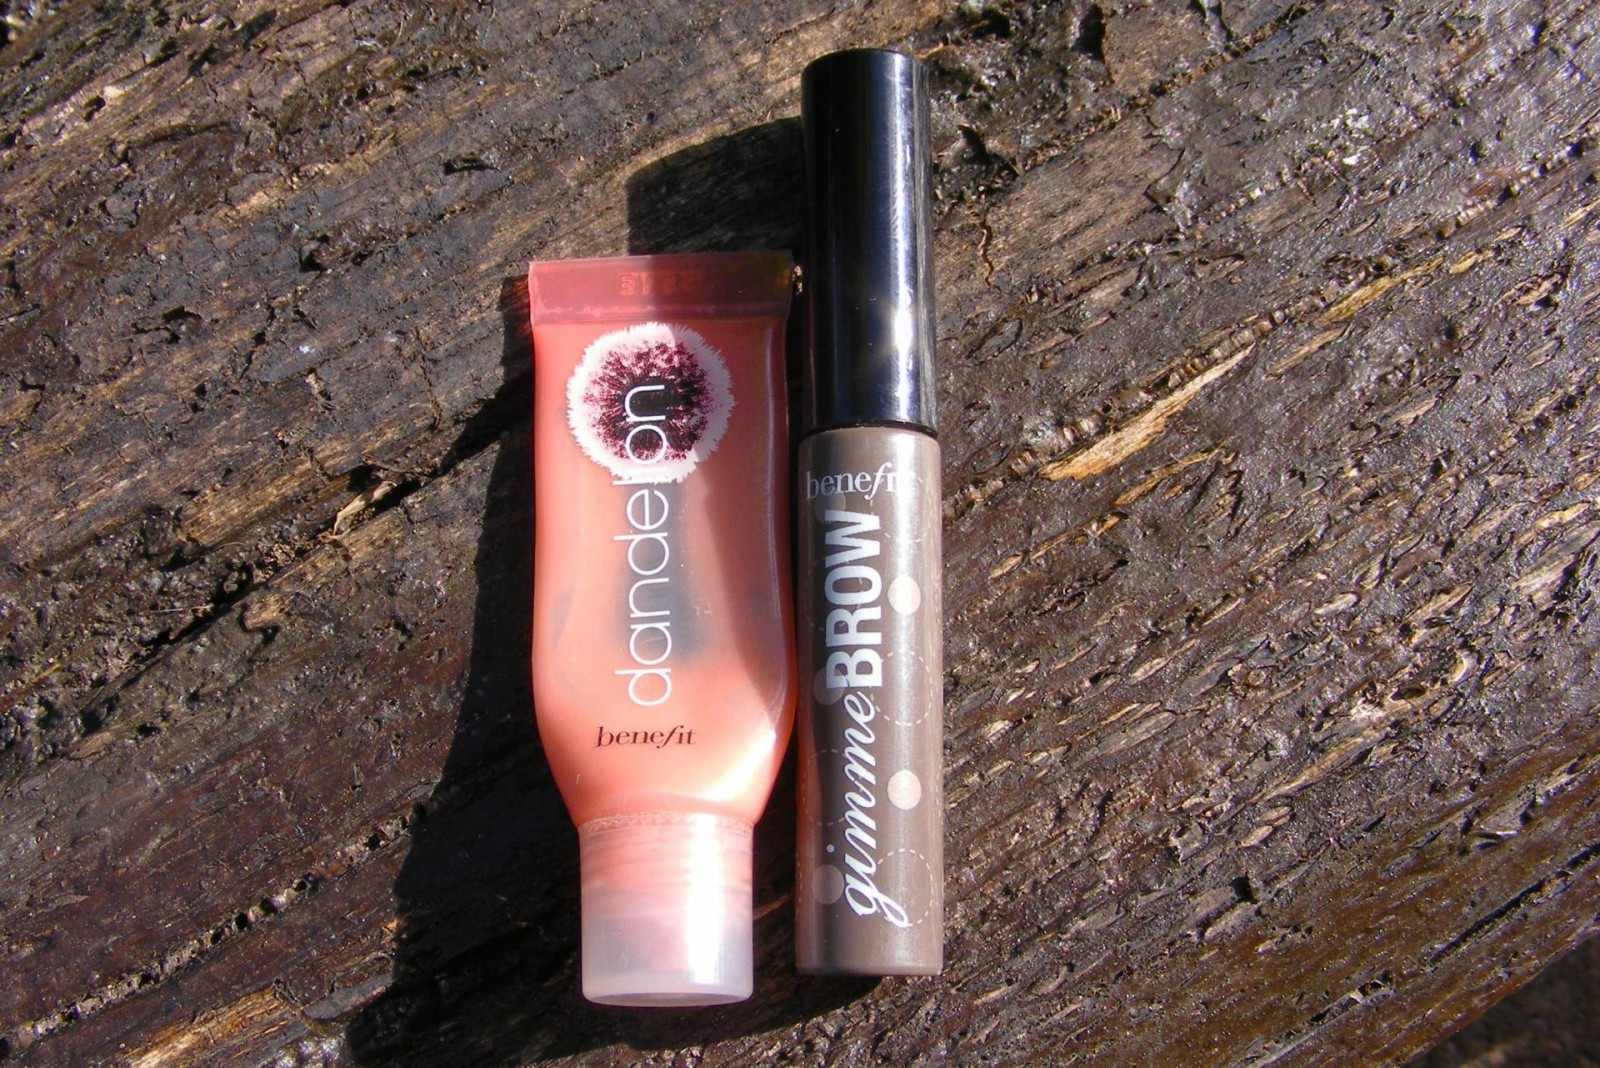 Benefit Dandelion lip gloss and Gimme Brow